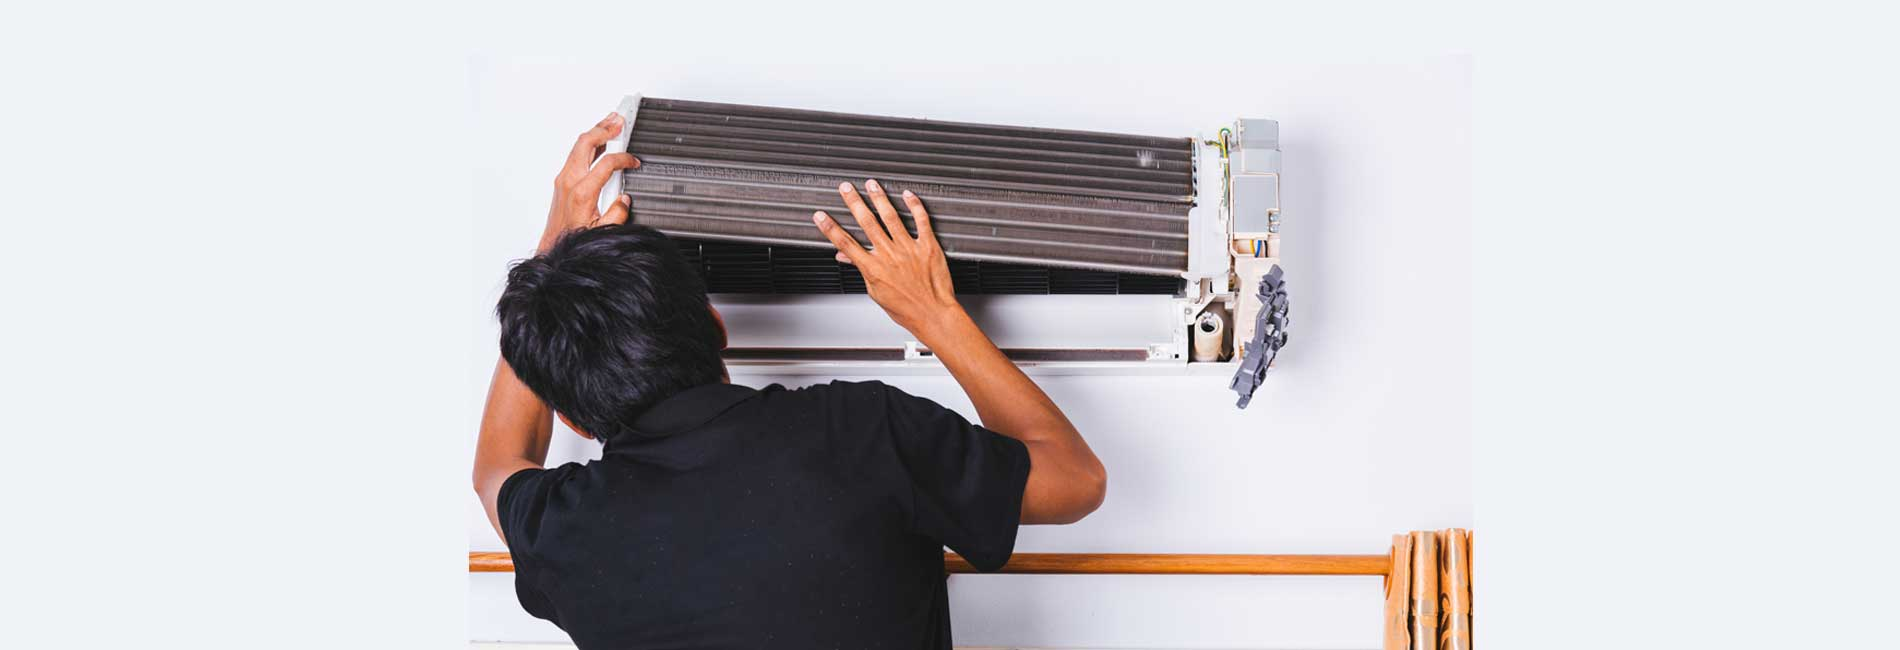 Samsung AC Repair in Kattankulathur